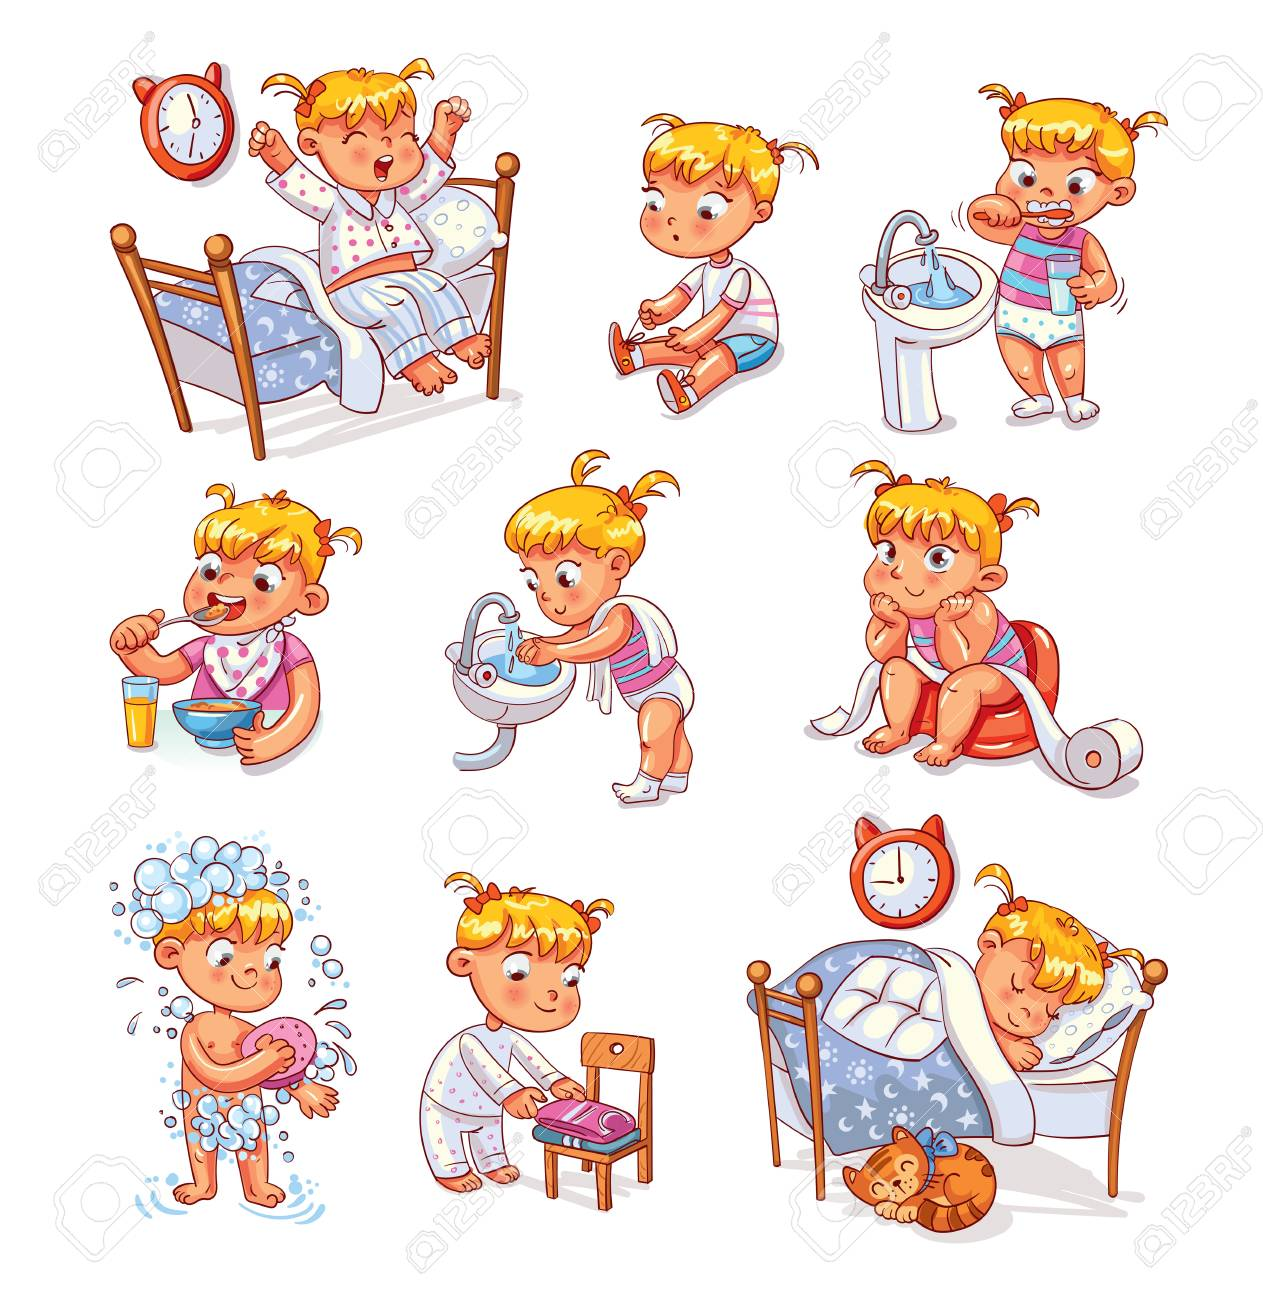 Daily routine activities. Baby sitting children's pot. Girl brushing her teeth. Kid neatly folds his clothes. Girl washes her hands. Child taking shower. Wake up in morning. Funny cartoon character. - 91740741